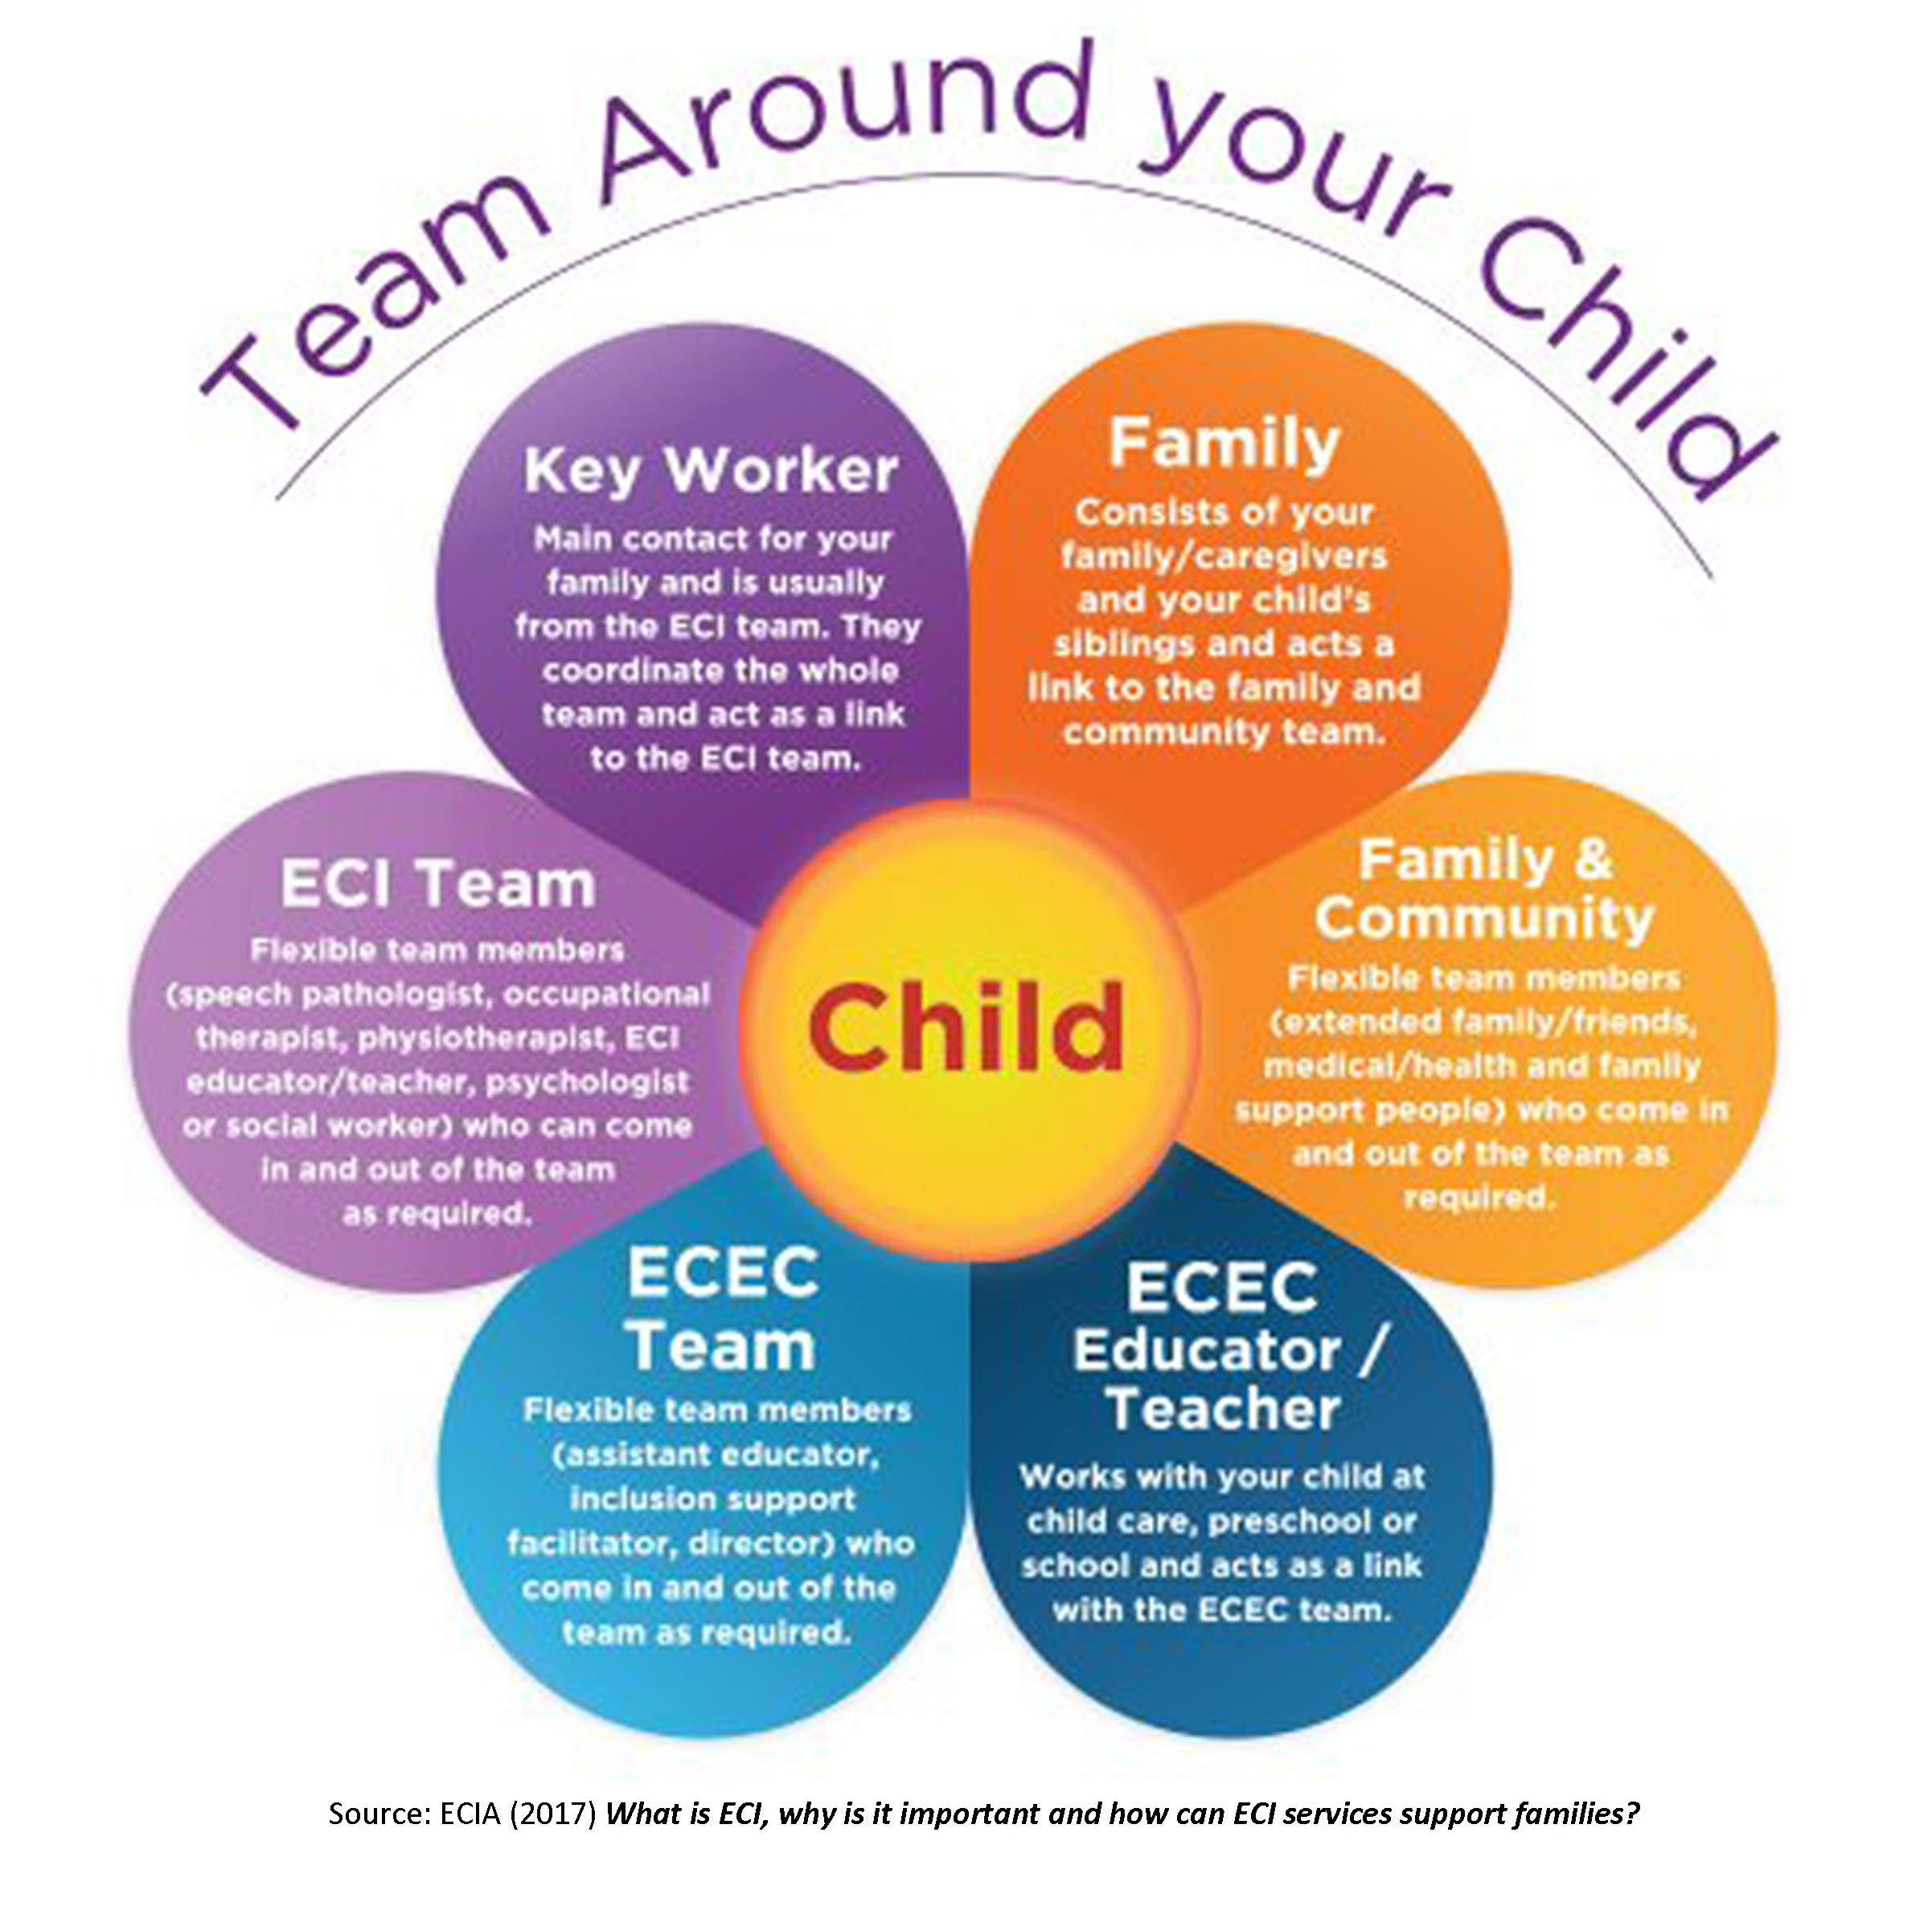 The Team around your child - Infographic. Flower with child at centre and surrounded by petals labelled: Key worker, Family, Family & Community, ECEC Educator/Teacher, ECEC Team, ECI Team